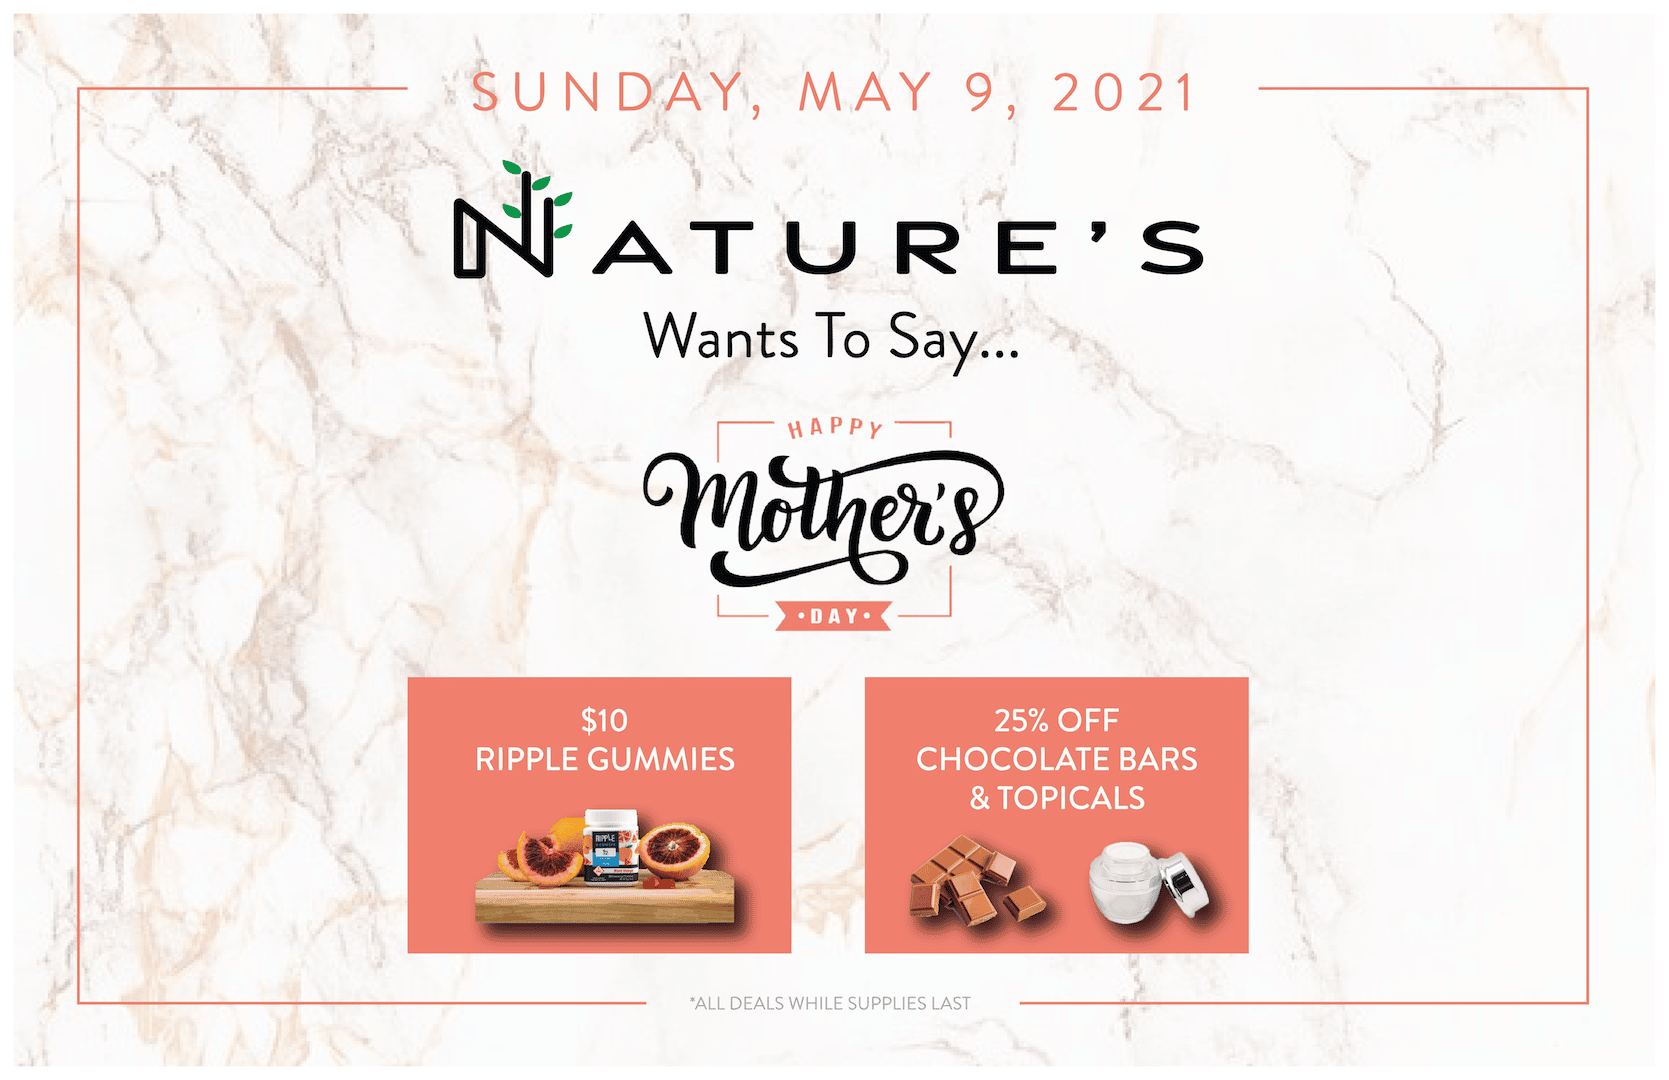 Mother's Day Sale at All Nature's Rec Locations!